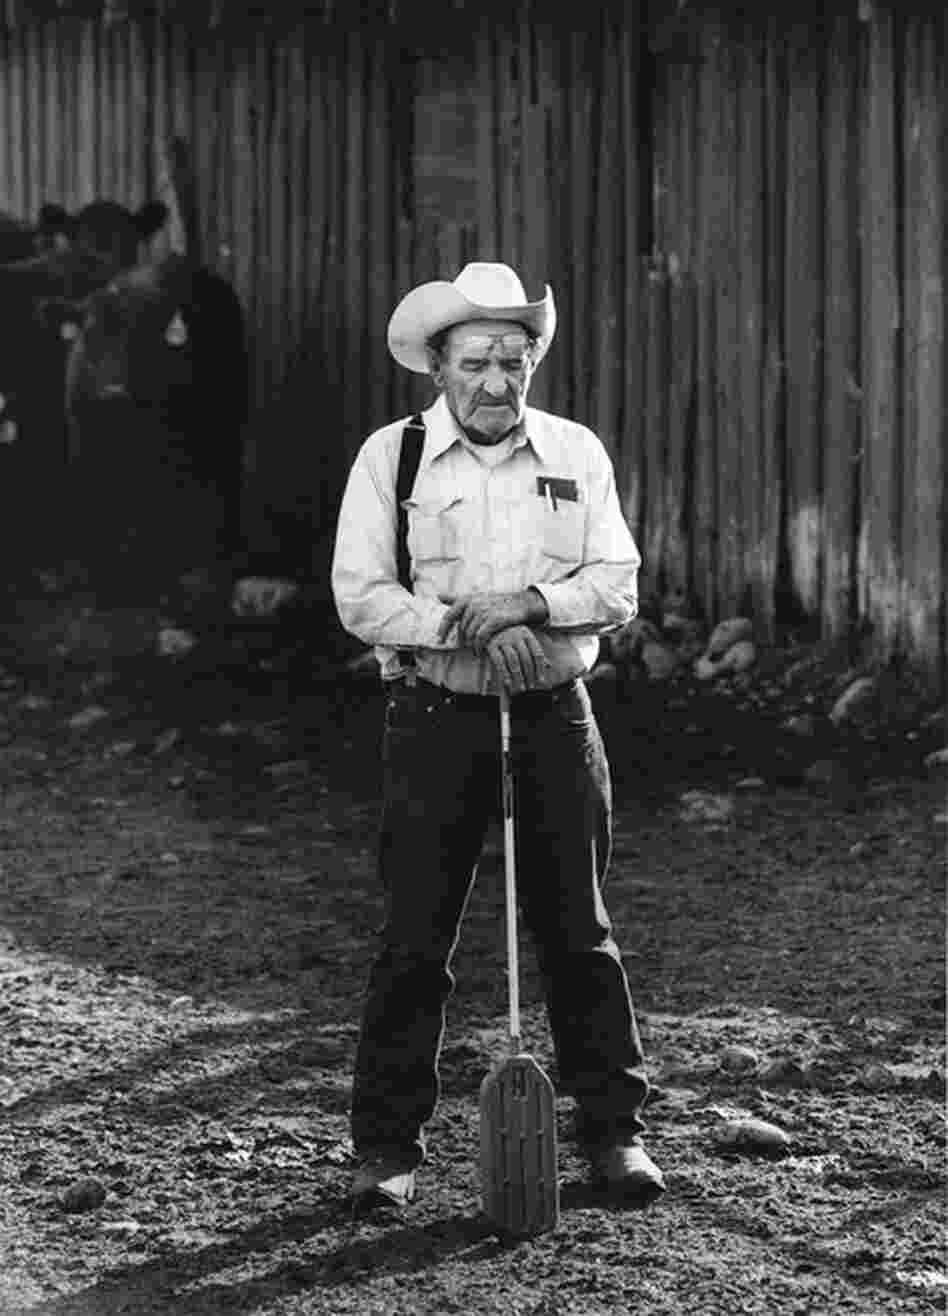 Cattle Broker, Yampa, Colo., 2009